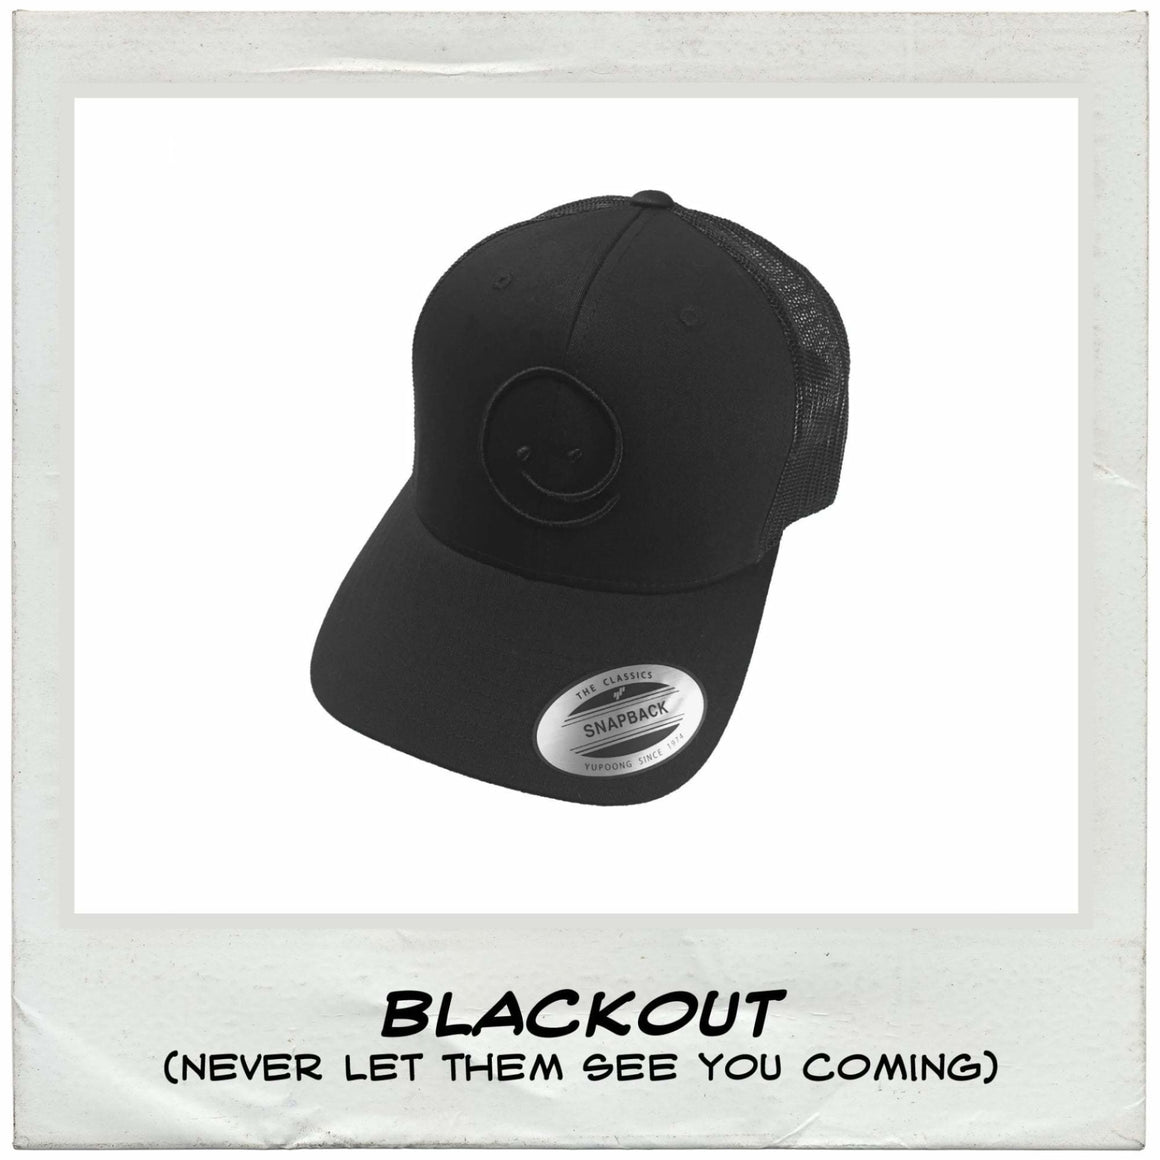 Retro Trucker: Blackout